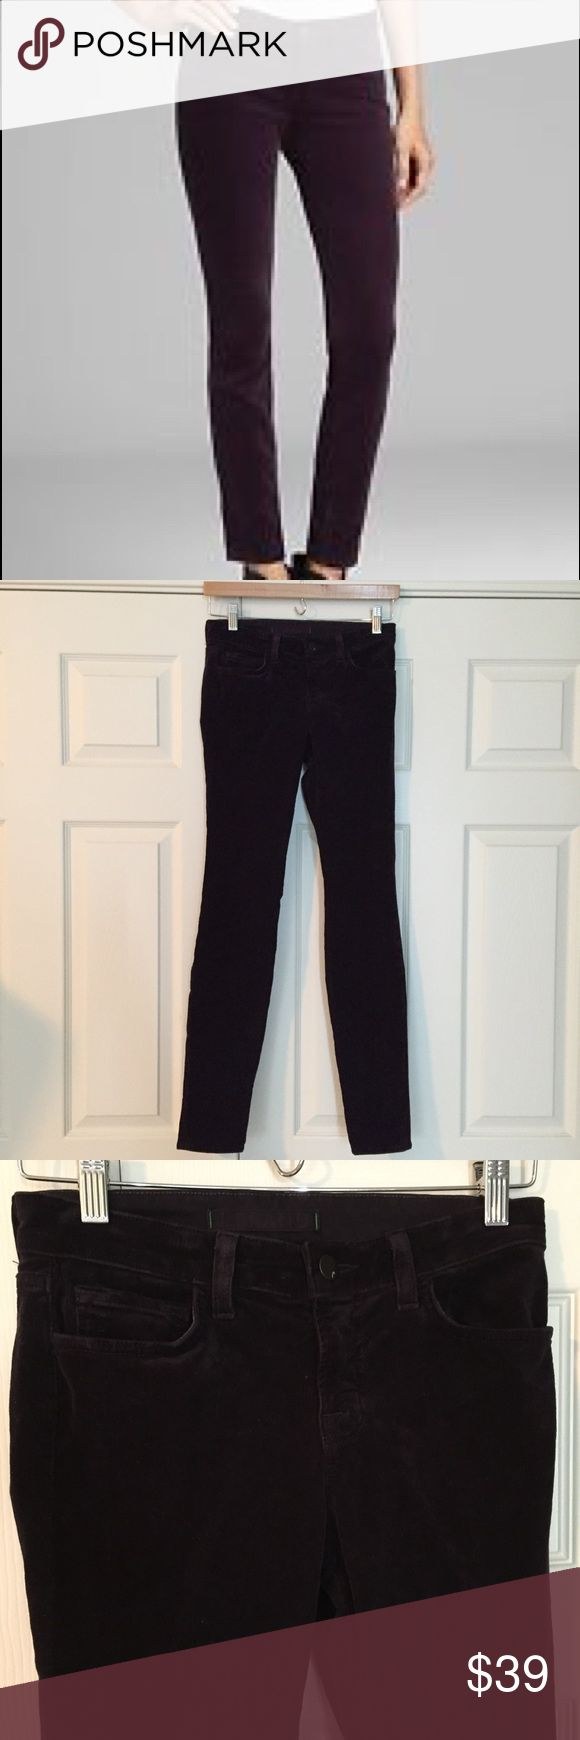 """🎉Final Price🎉J Brand Skinny Mulberry Cord Jean super pretty """"Mulberry"""" pinwale corduroy skinny leg from J Brand. 98% cotton 2% spandex. very good condition. size 26. waist flat is 13.5"""", front rise is 8"""", inseam is 30.5"""". 7D1935. J Brand Jeans Skinny"""